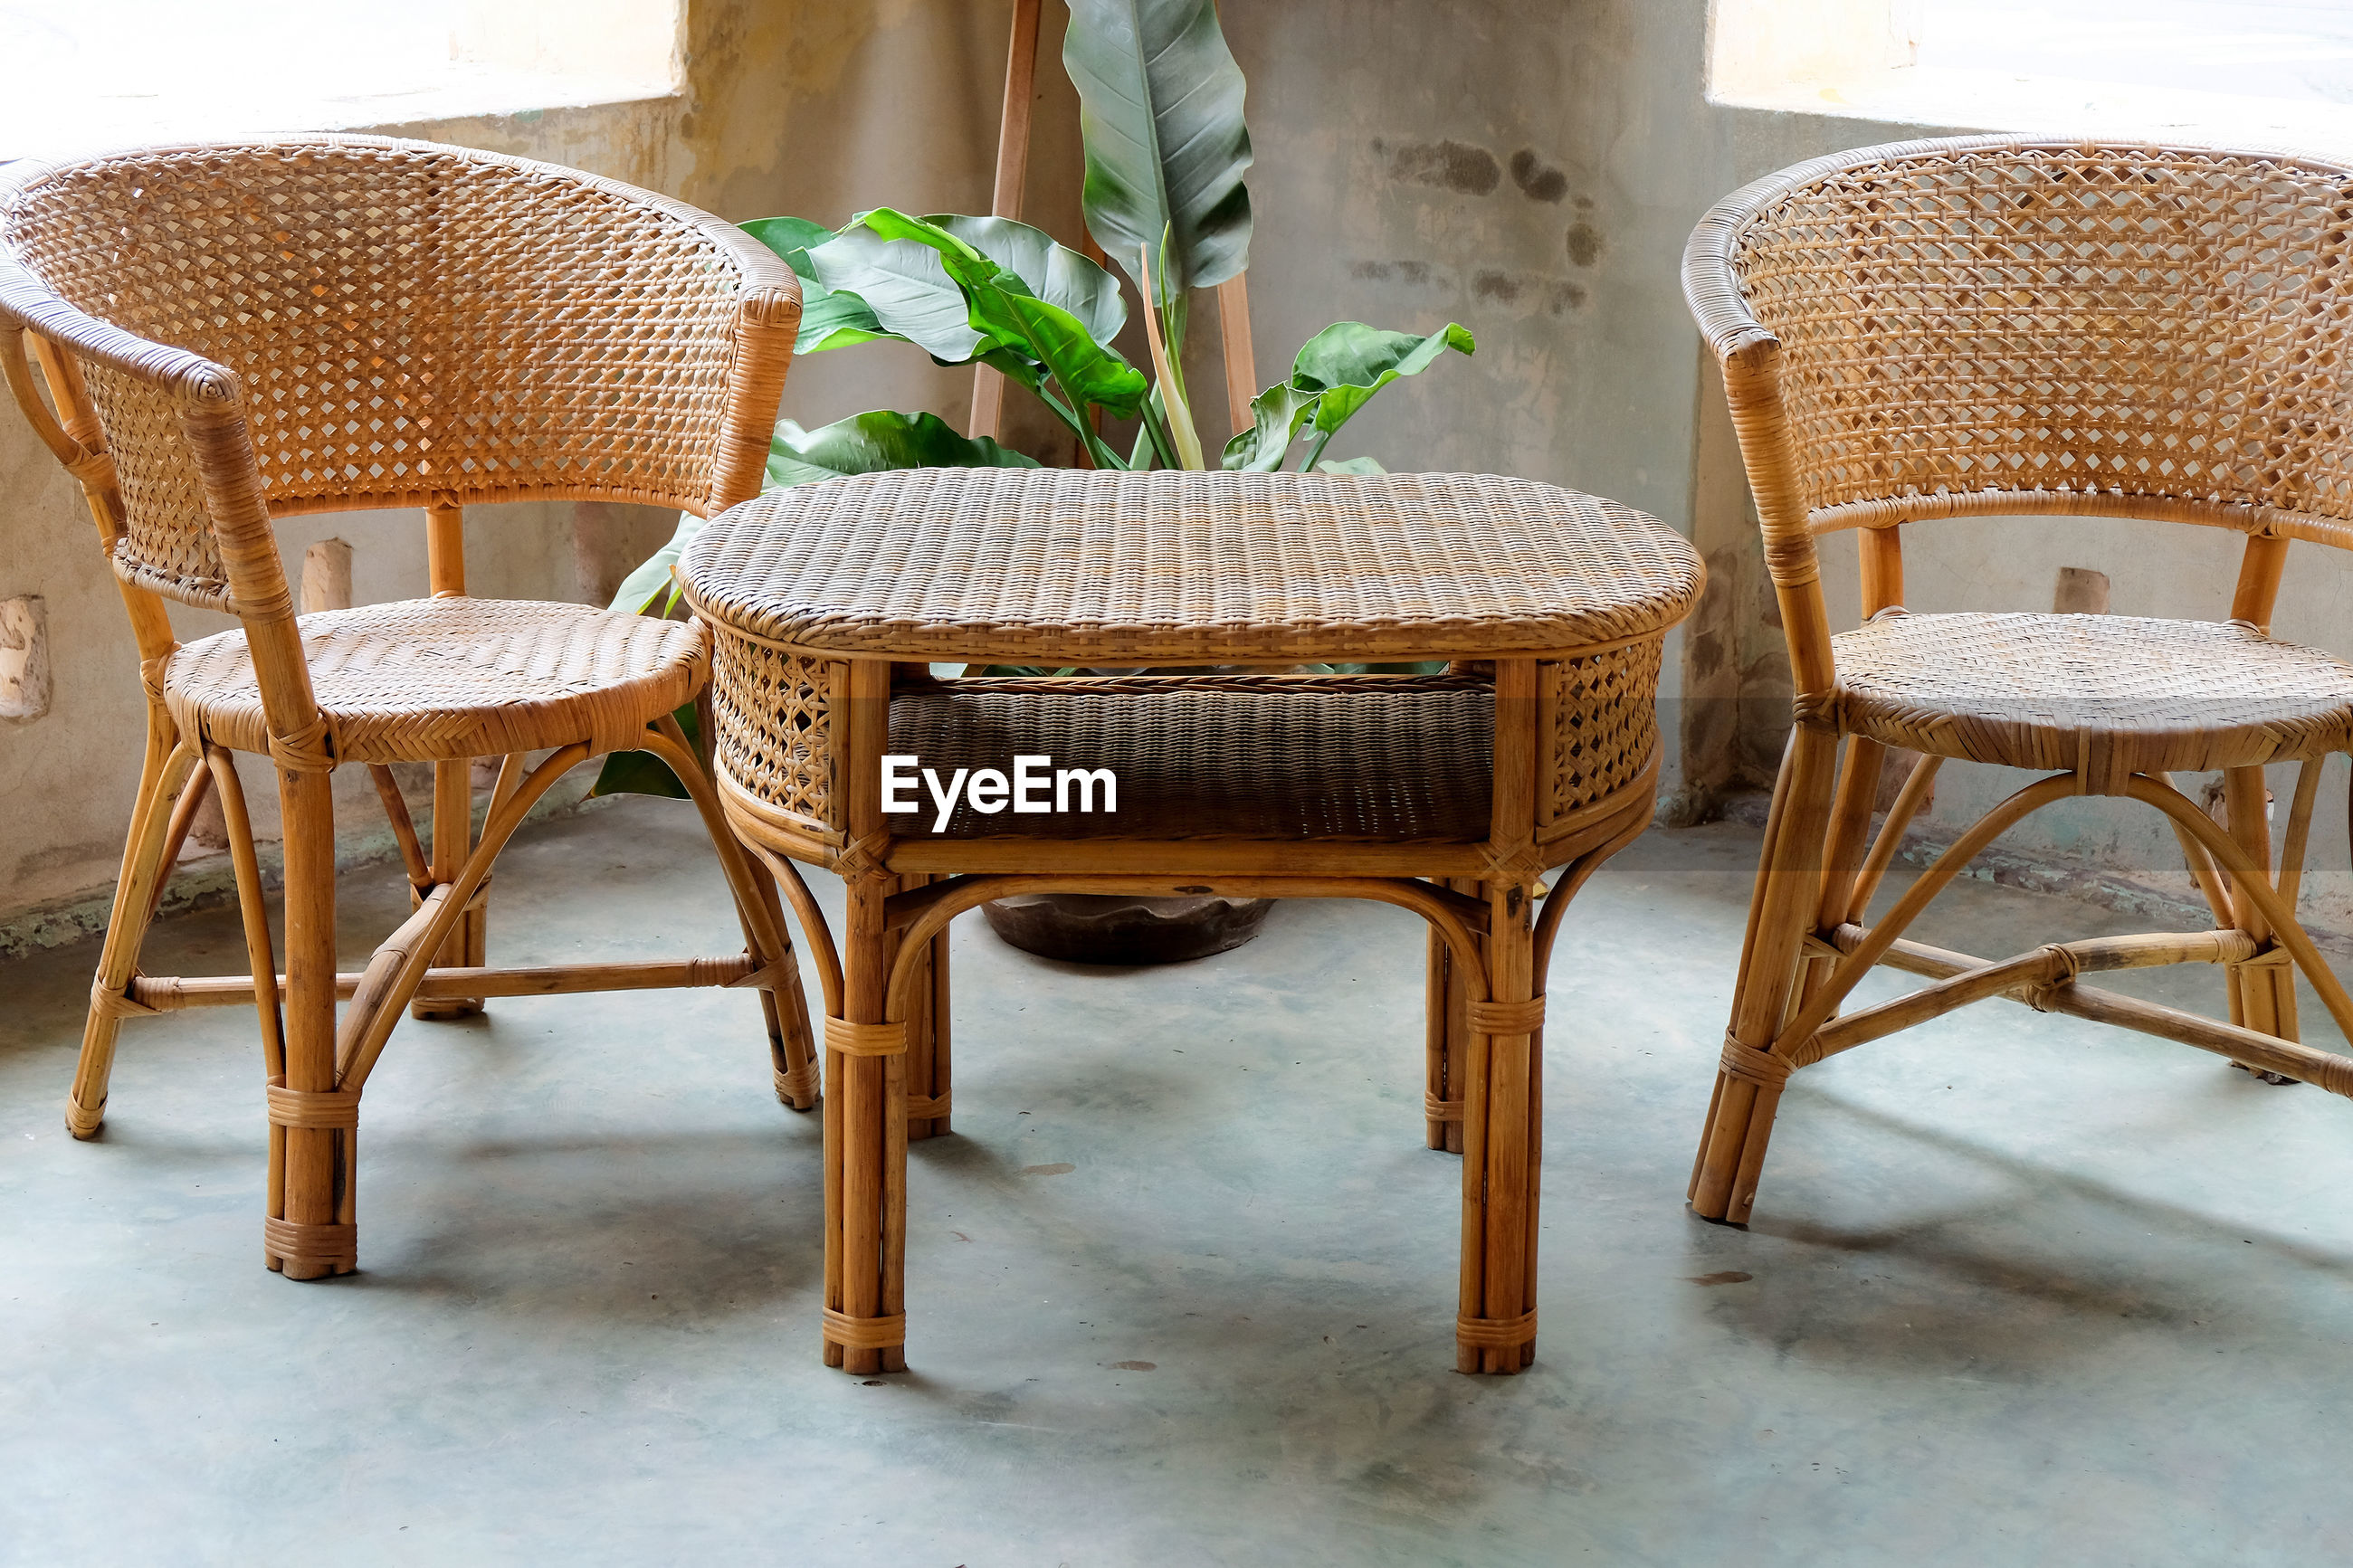 EMPTY CHAIRS AND TABLE IN BASKET